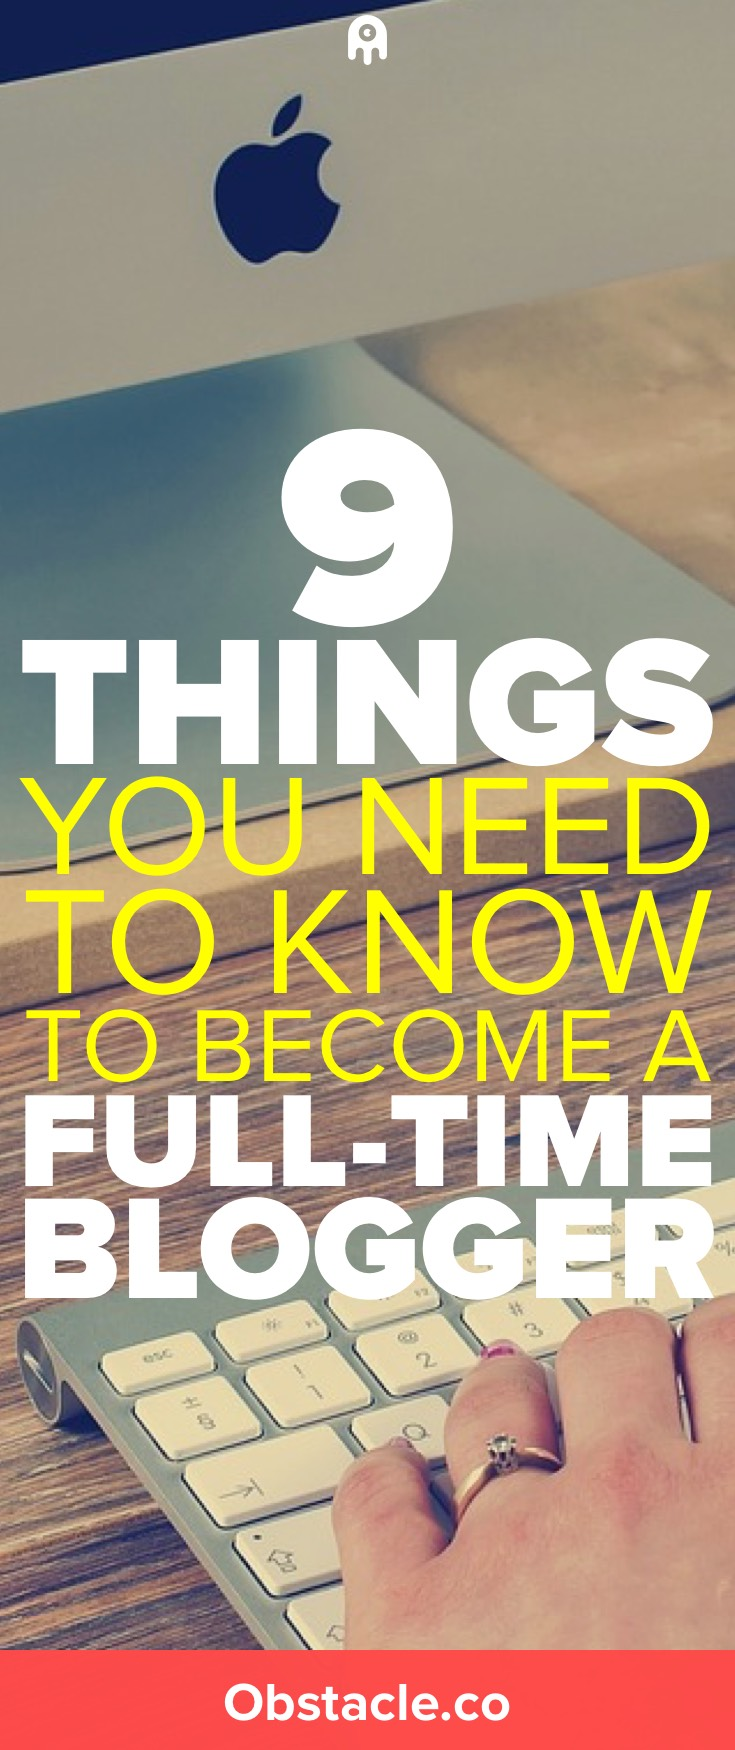 9 Things You Need to Know to Become a Full-Time Blogger